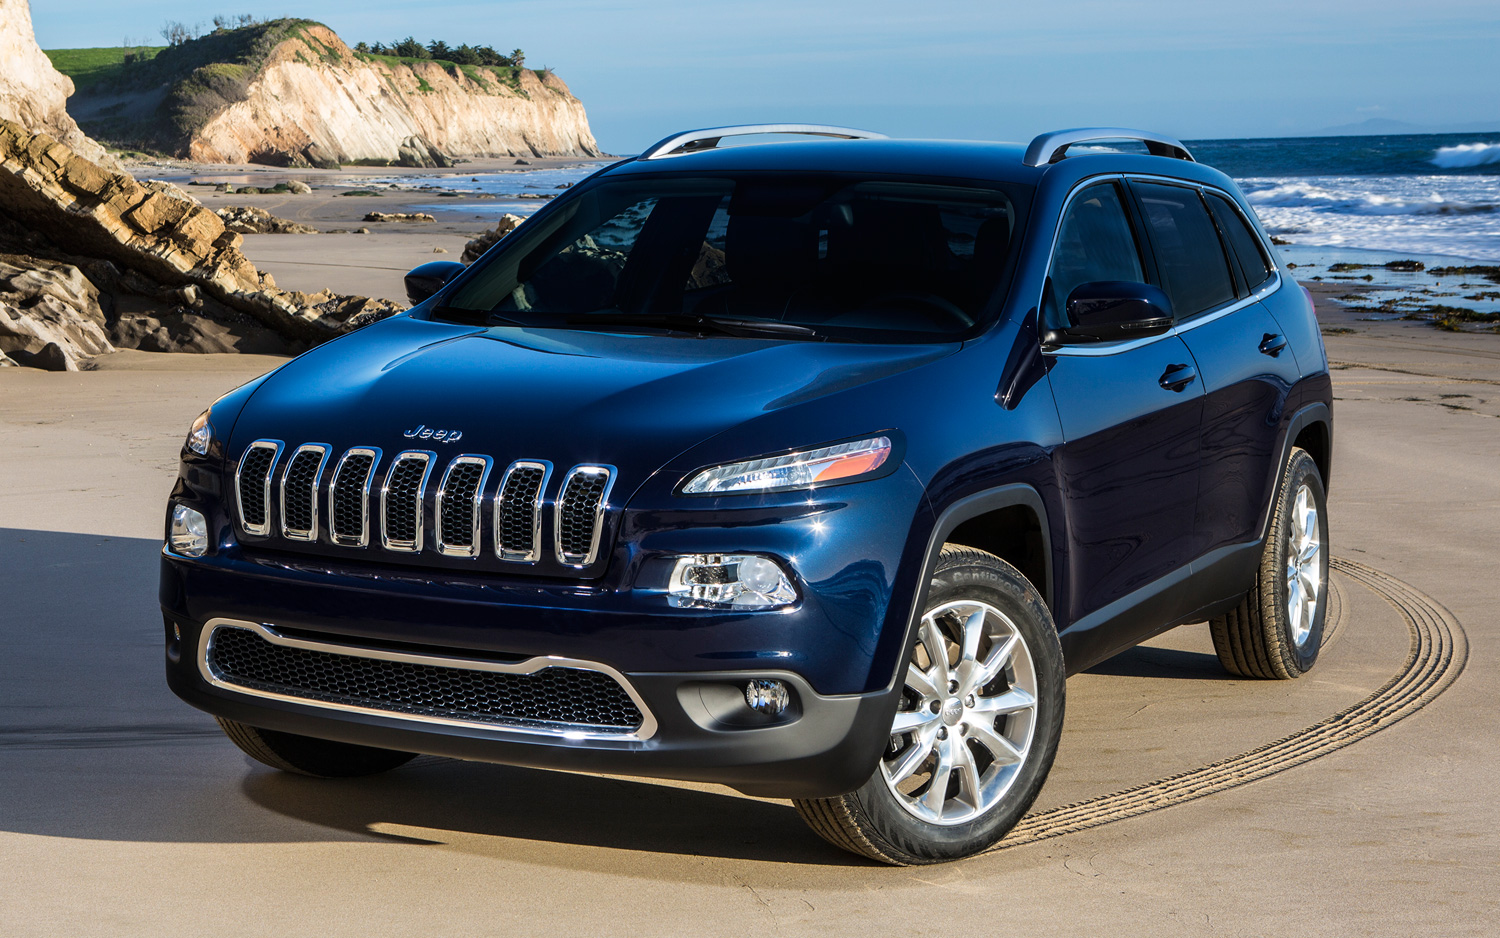 jeep 2014 Compass feeling better on rough terrain #1